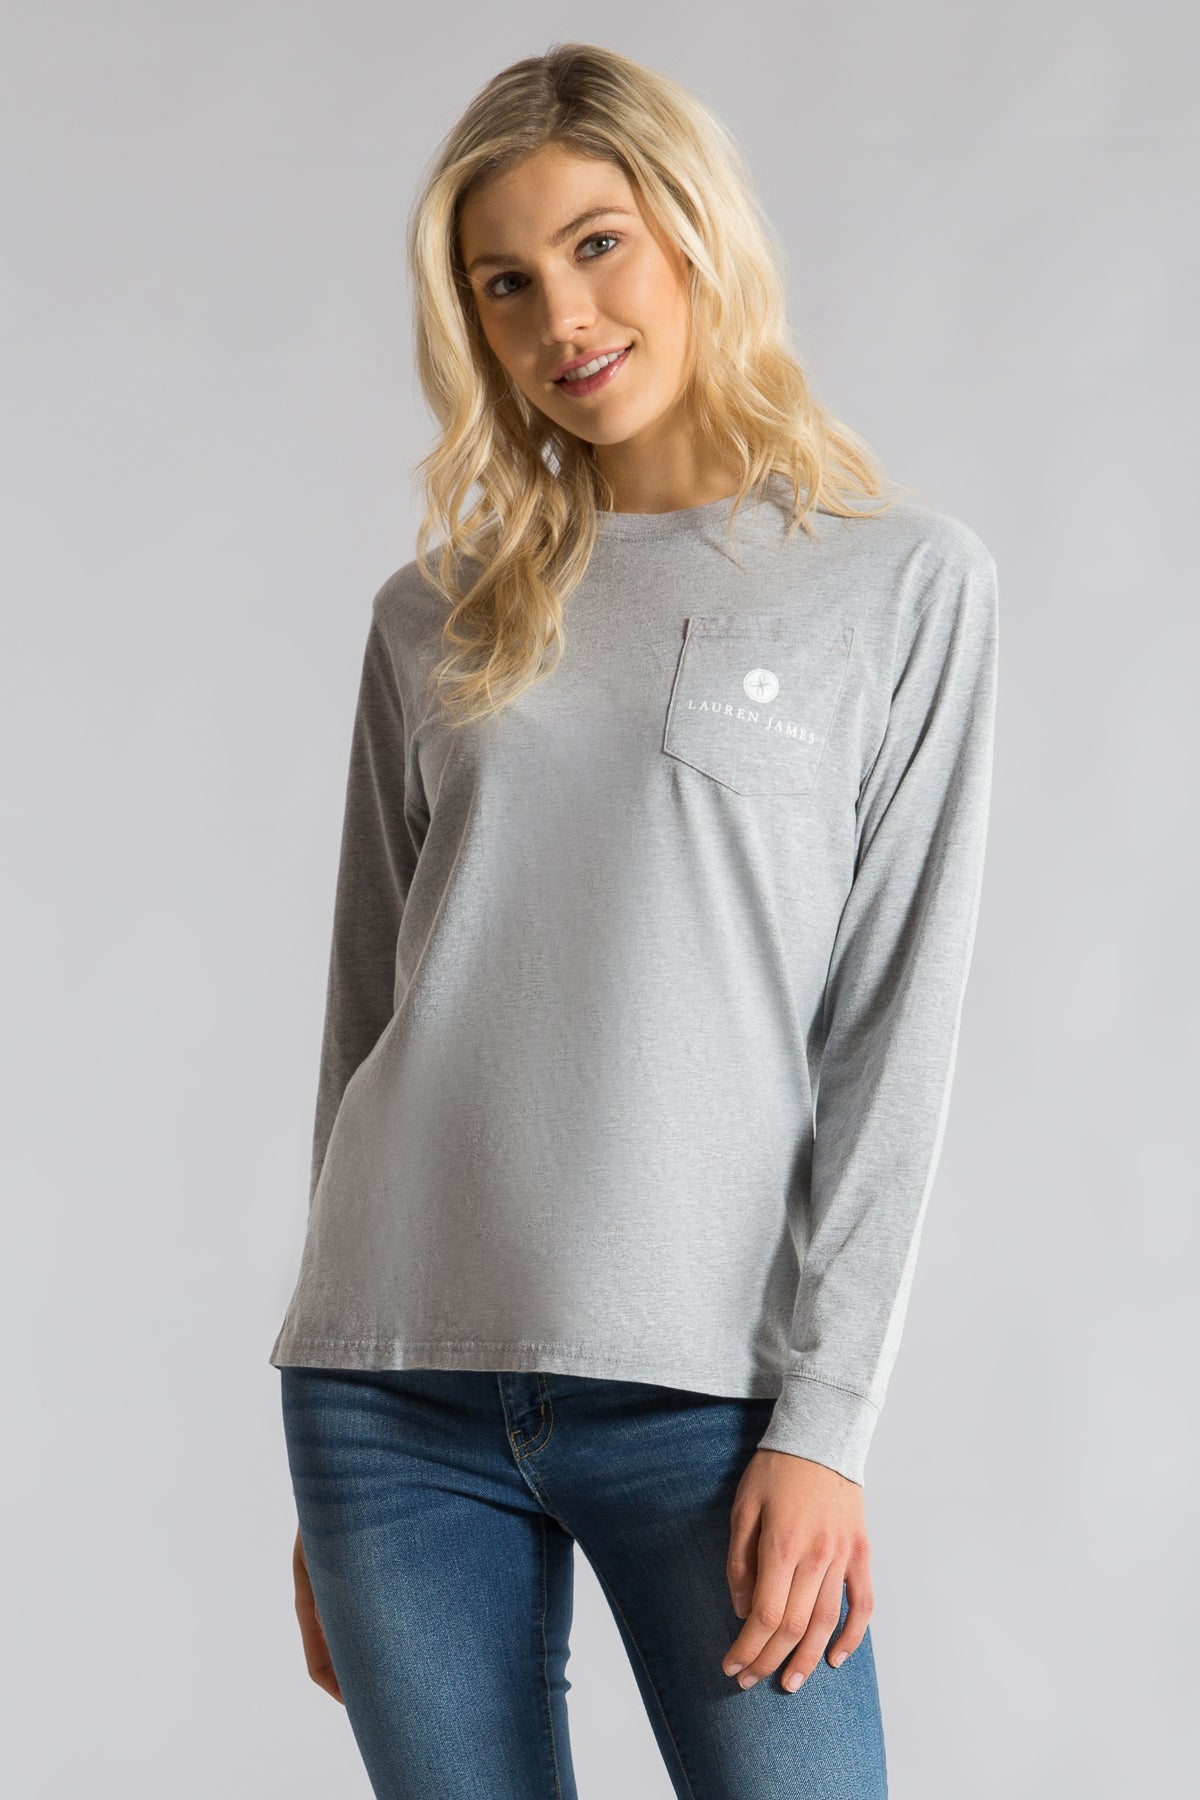 Heather Grey -New Year's Tee L/S -Front 1